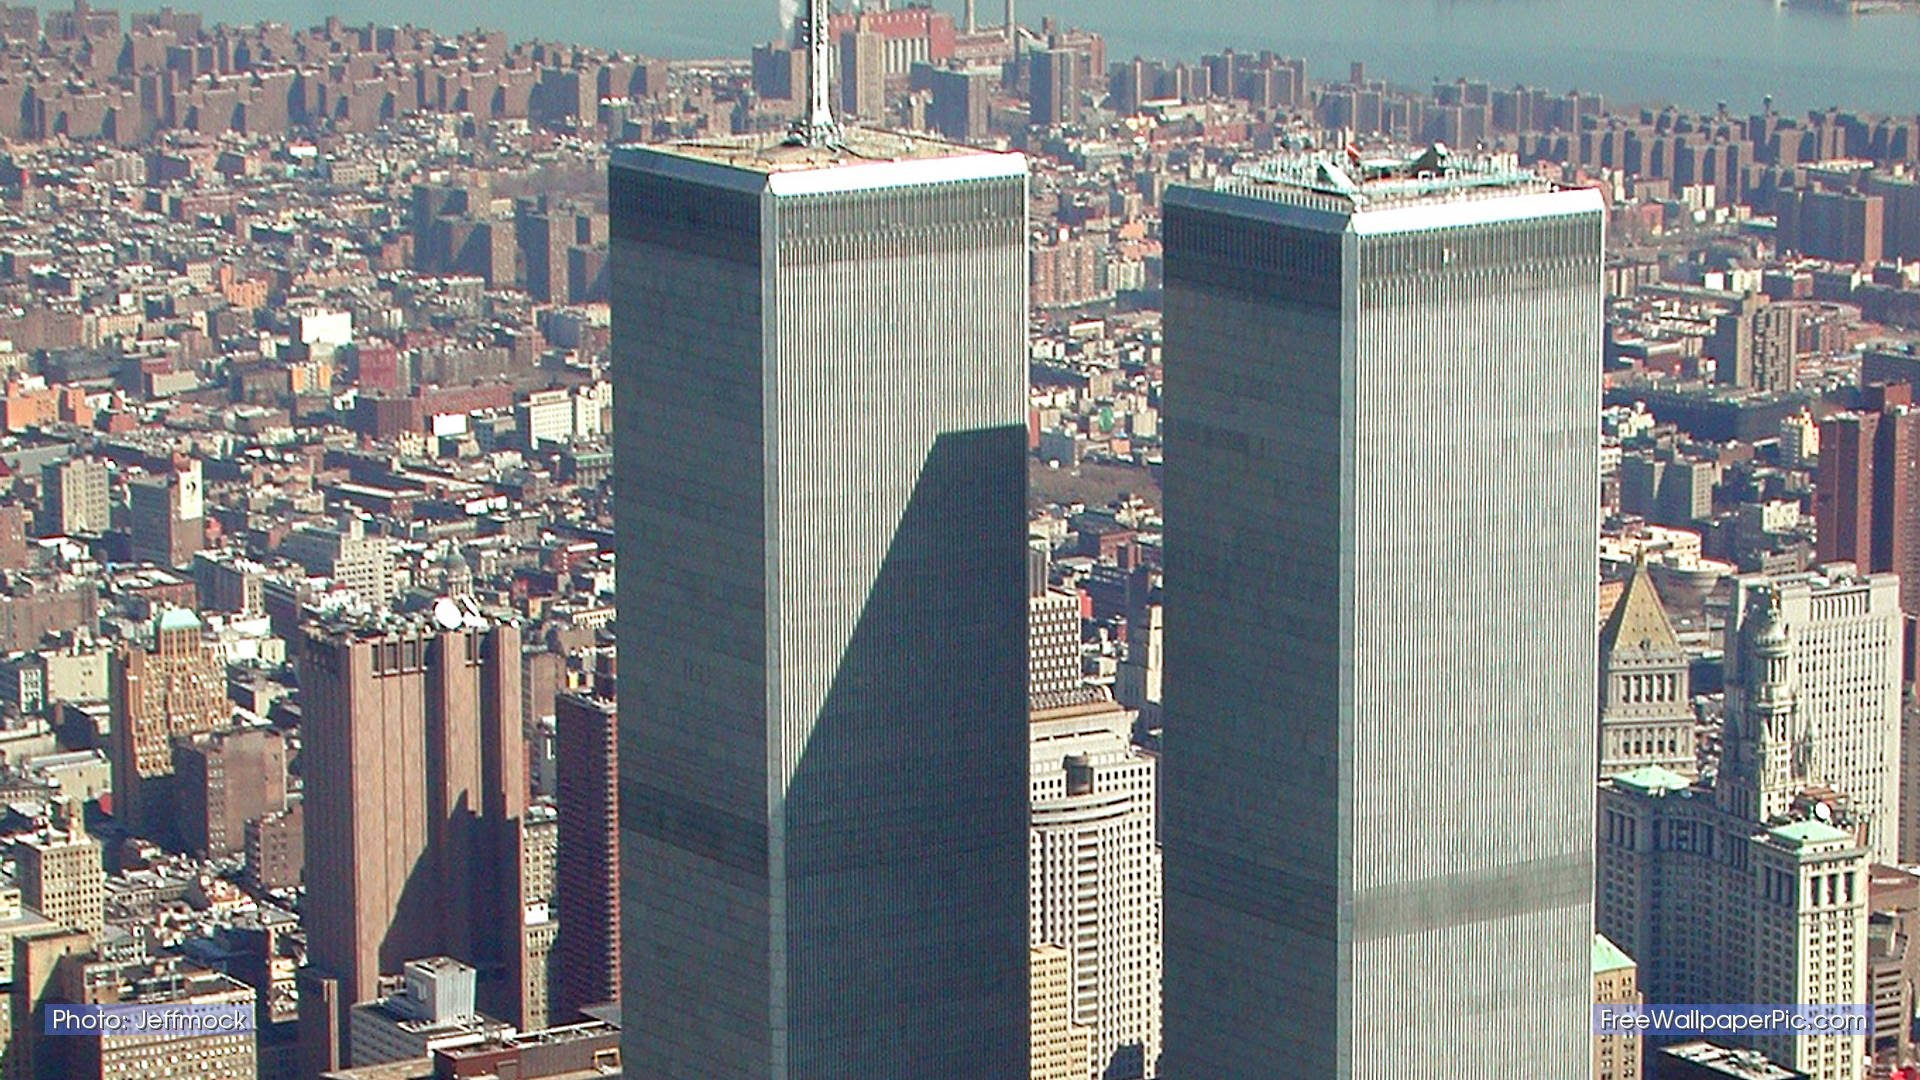 911 victims who fell from Twin Towers appeared to be